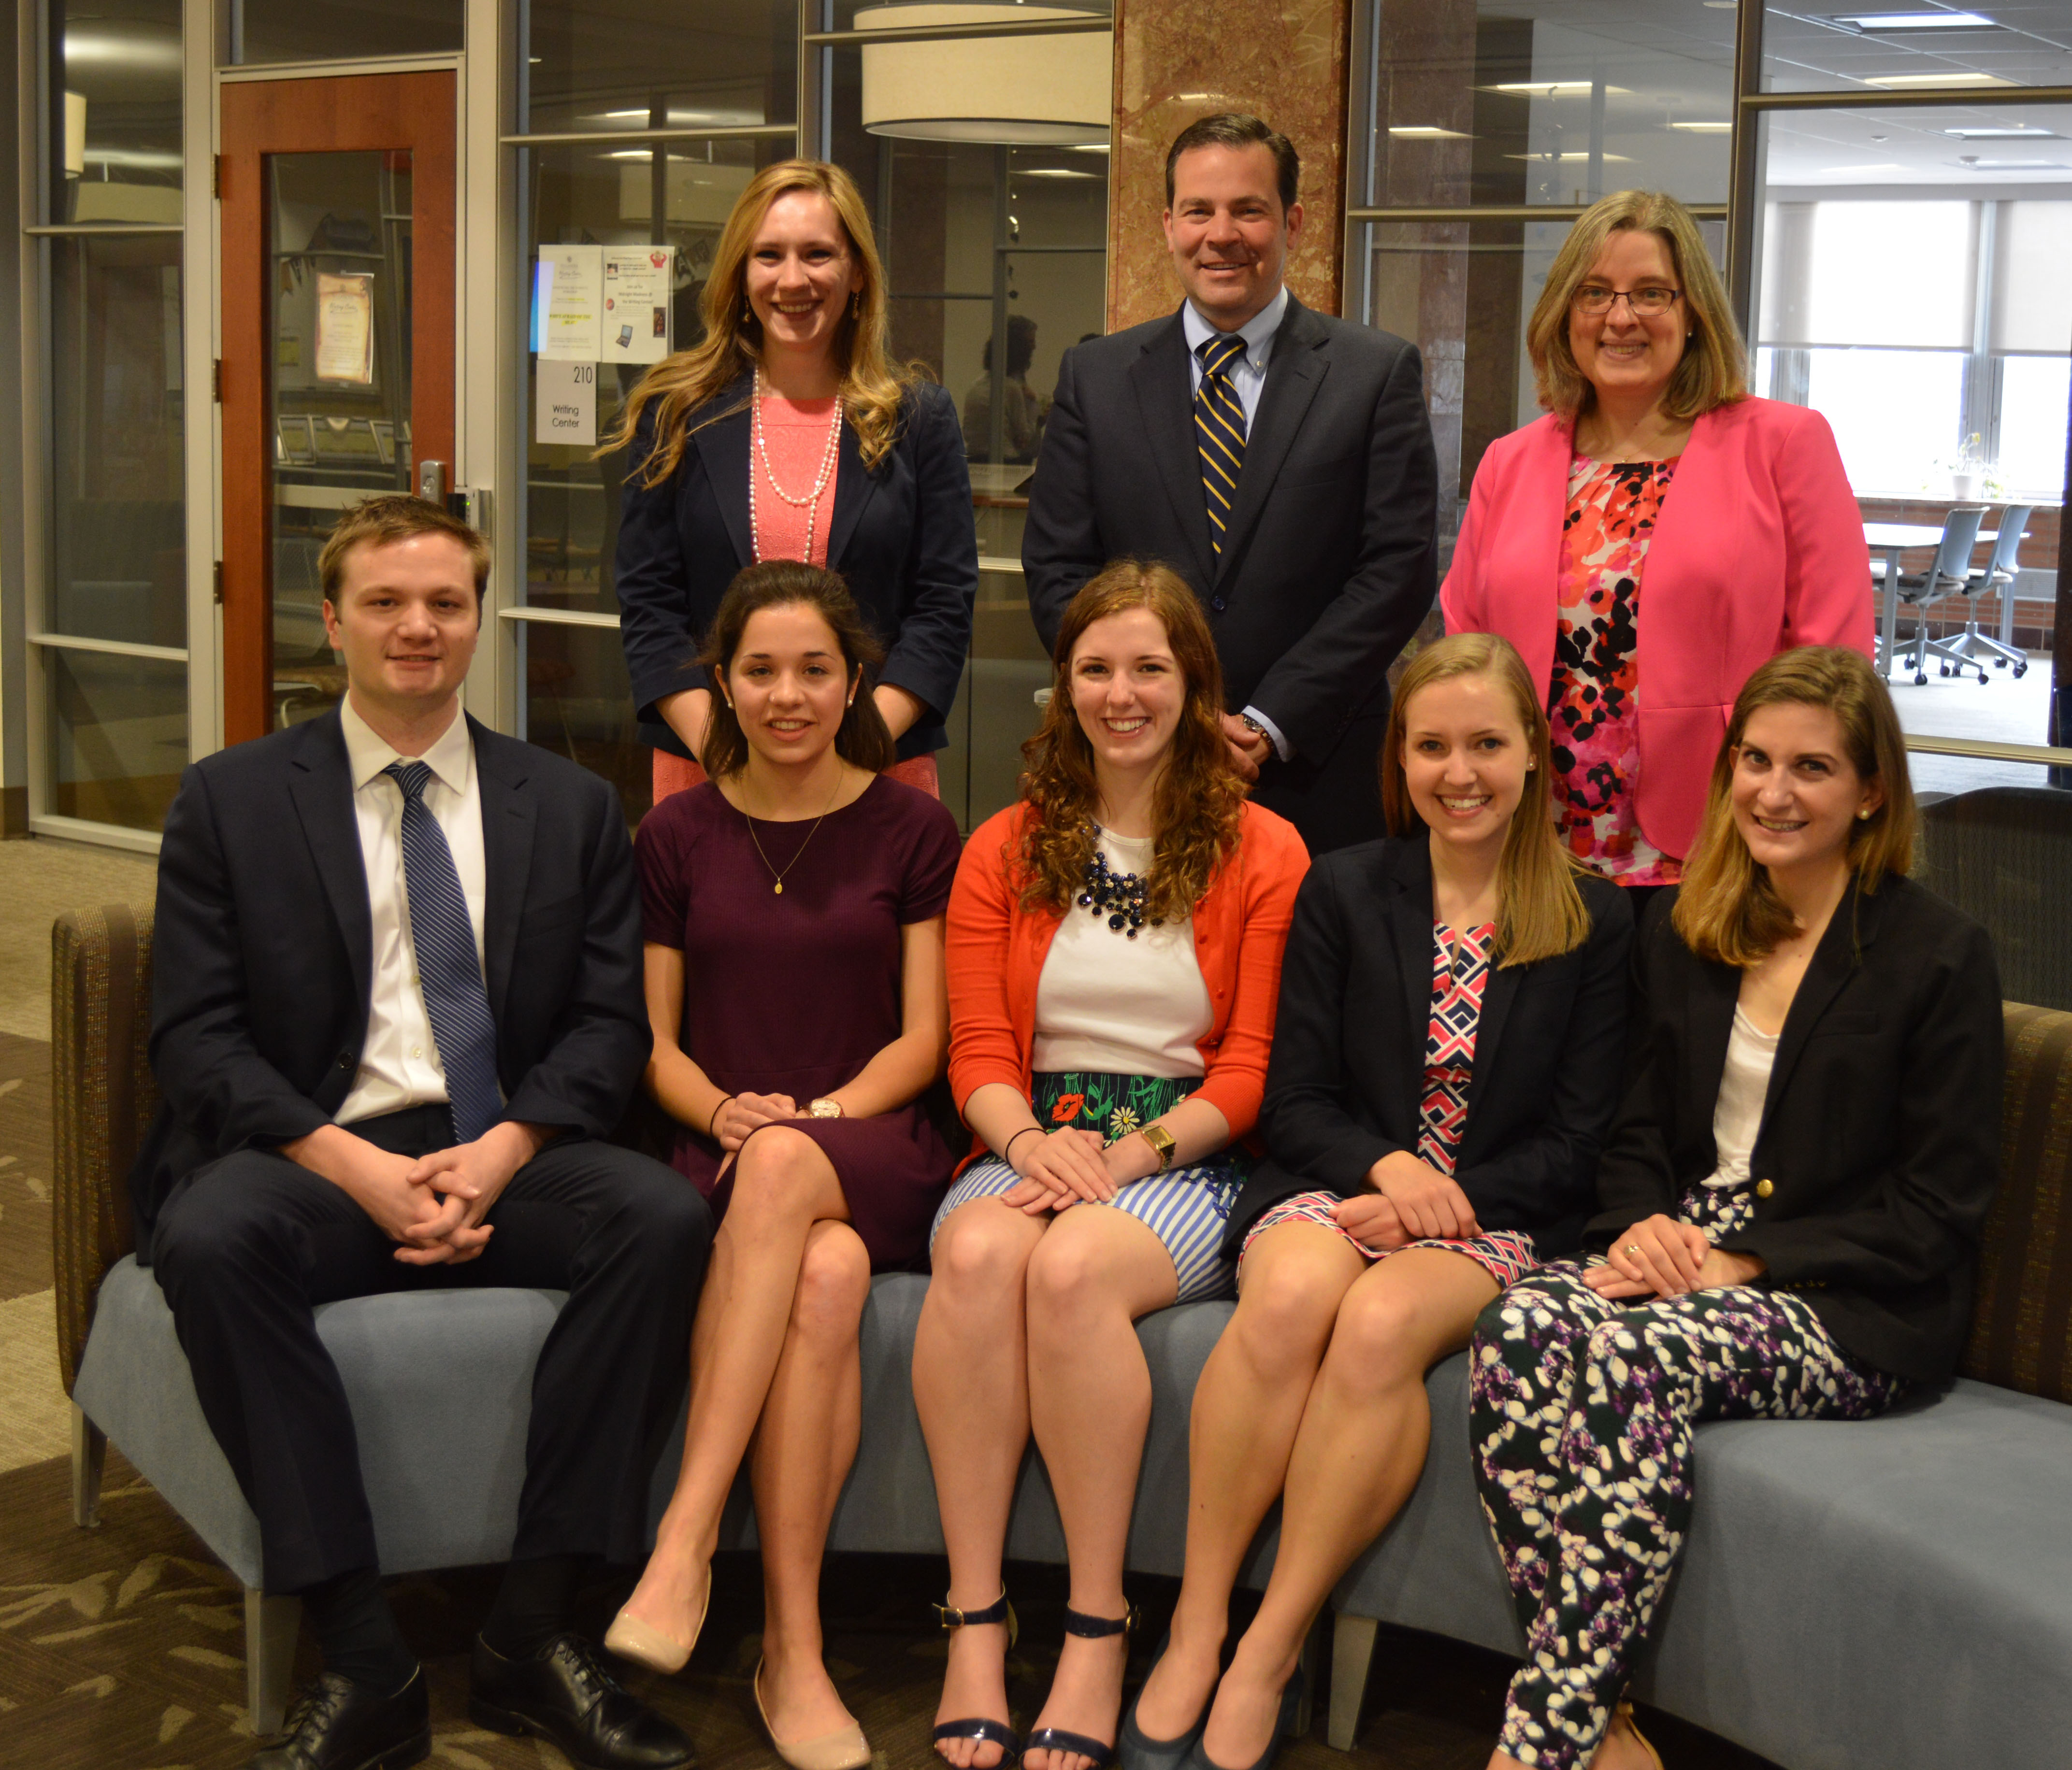 Thomas Cox, Tara Malanga, Chloe DeEntremont, Molly Purnell, Meghan Barker; Catherine Stecyk, Assistant Director for Undergraduate Research, Patrick Maggitti, University Provost, Millicent Gaskell, University Librarian